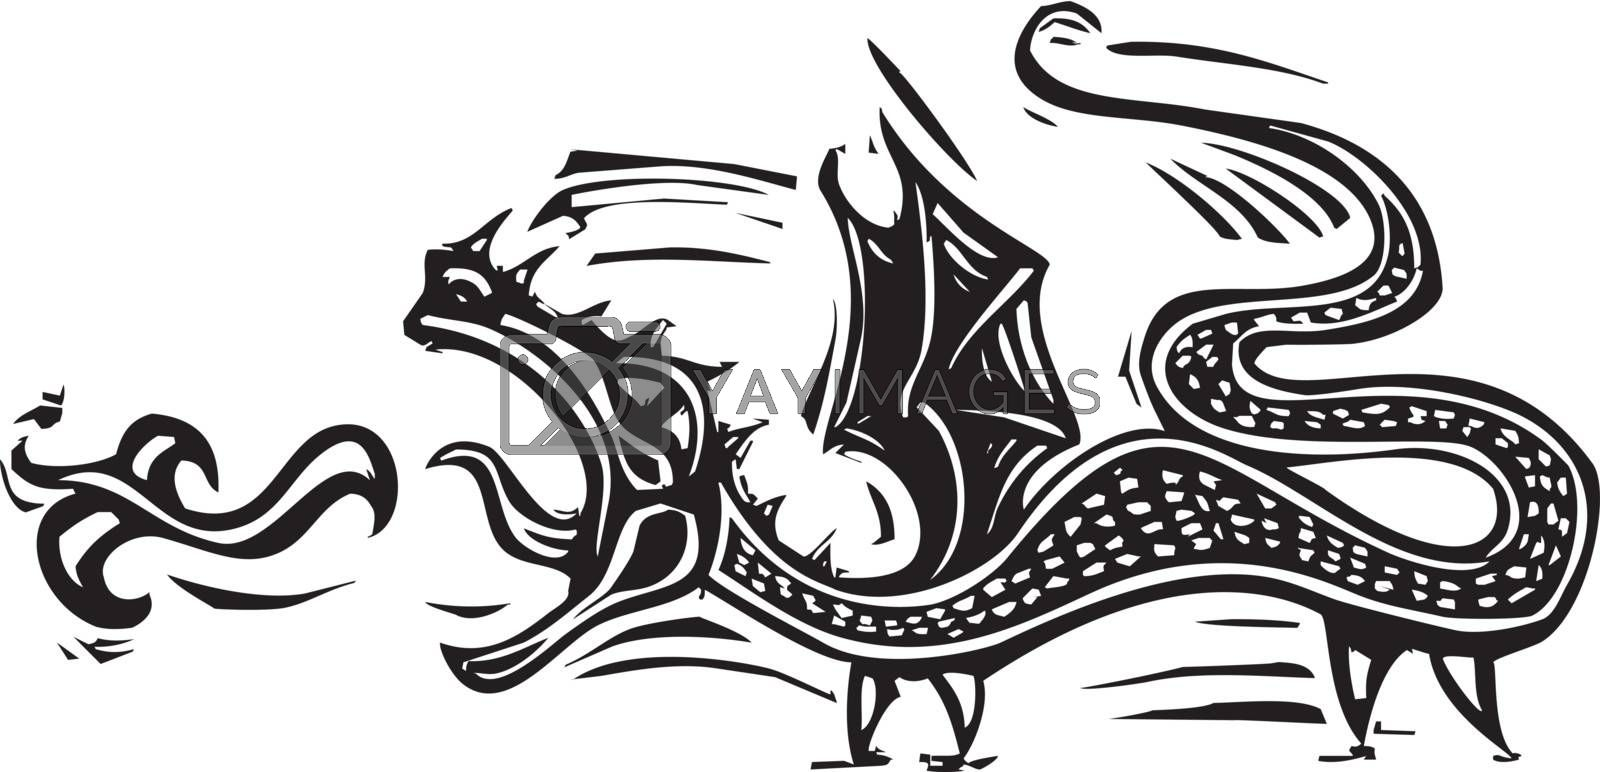 Woodcut expressionist style image of a fire breathing dragon.